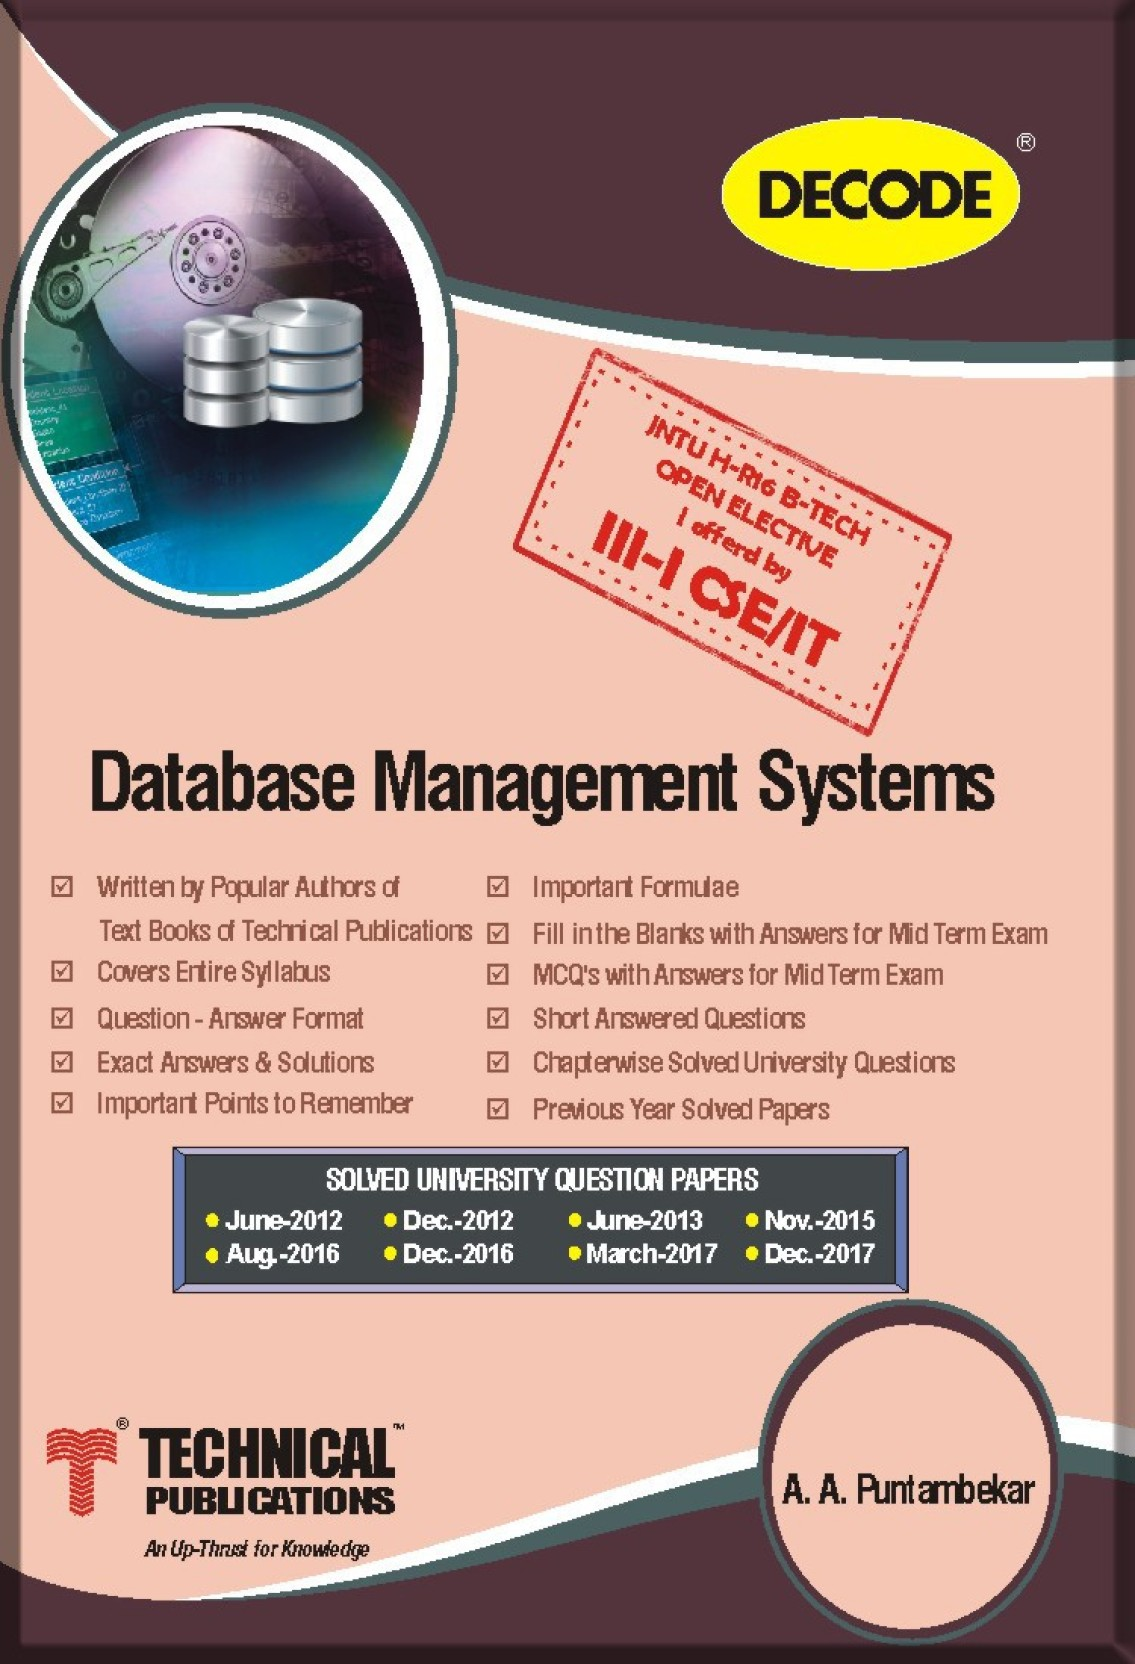 DECODE (ALL IN ONE) - JNTU-H Database Management Systems